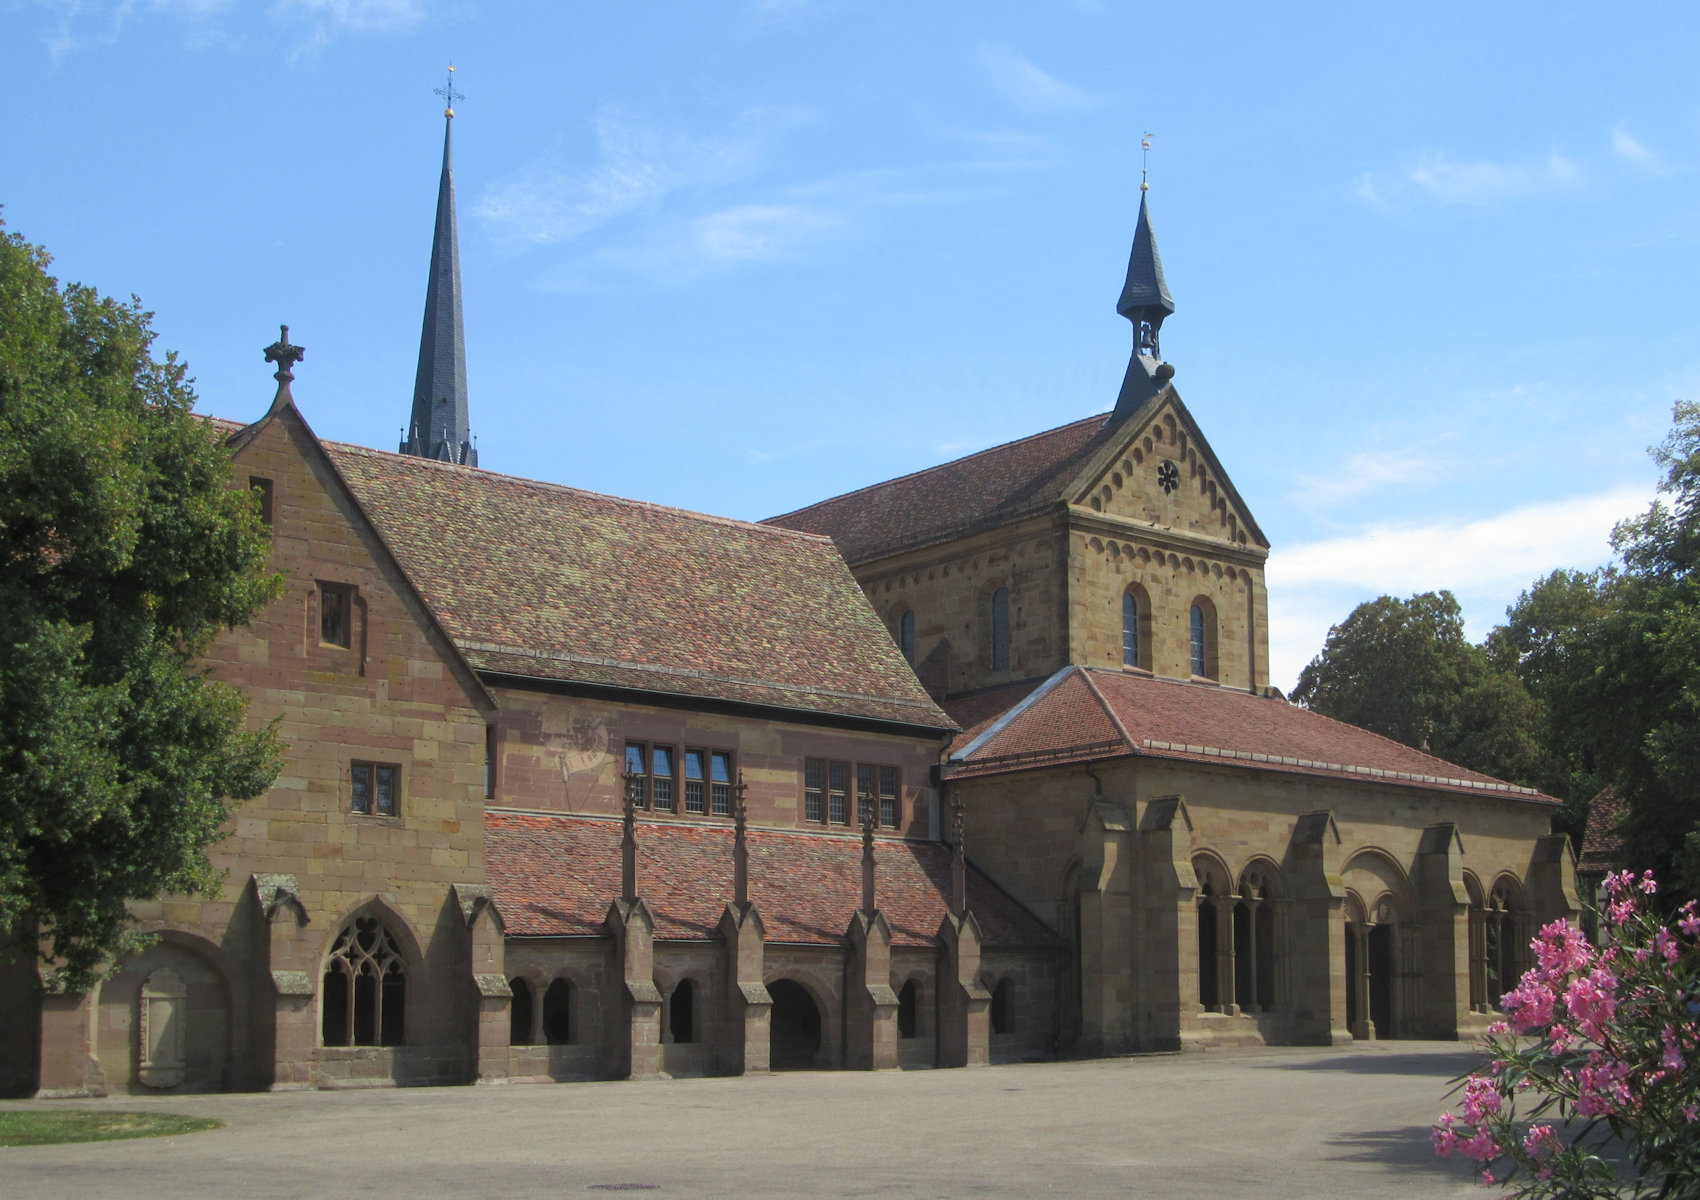 Kloster in Maulbronn